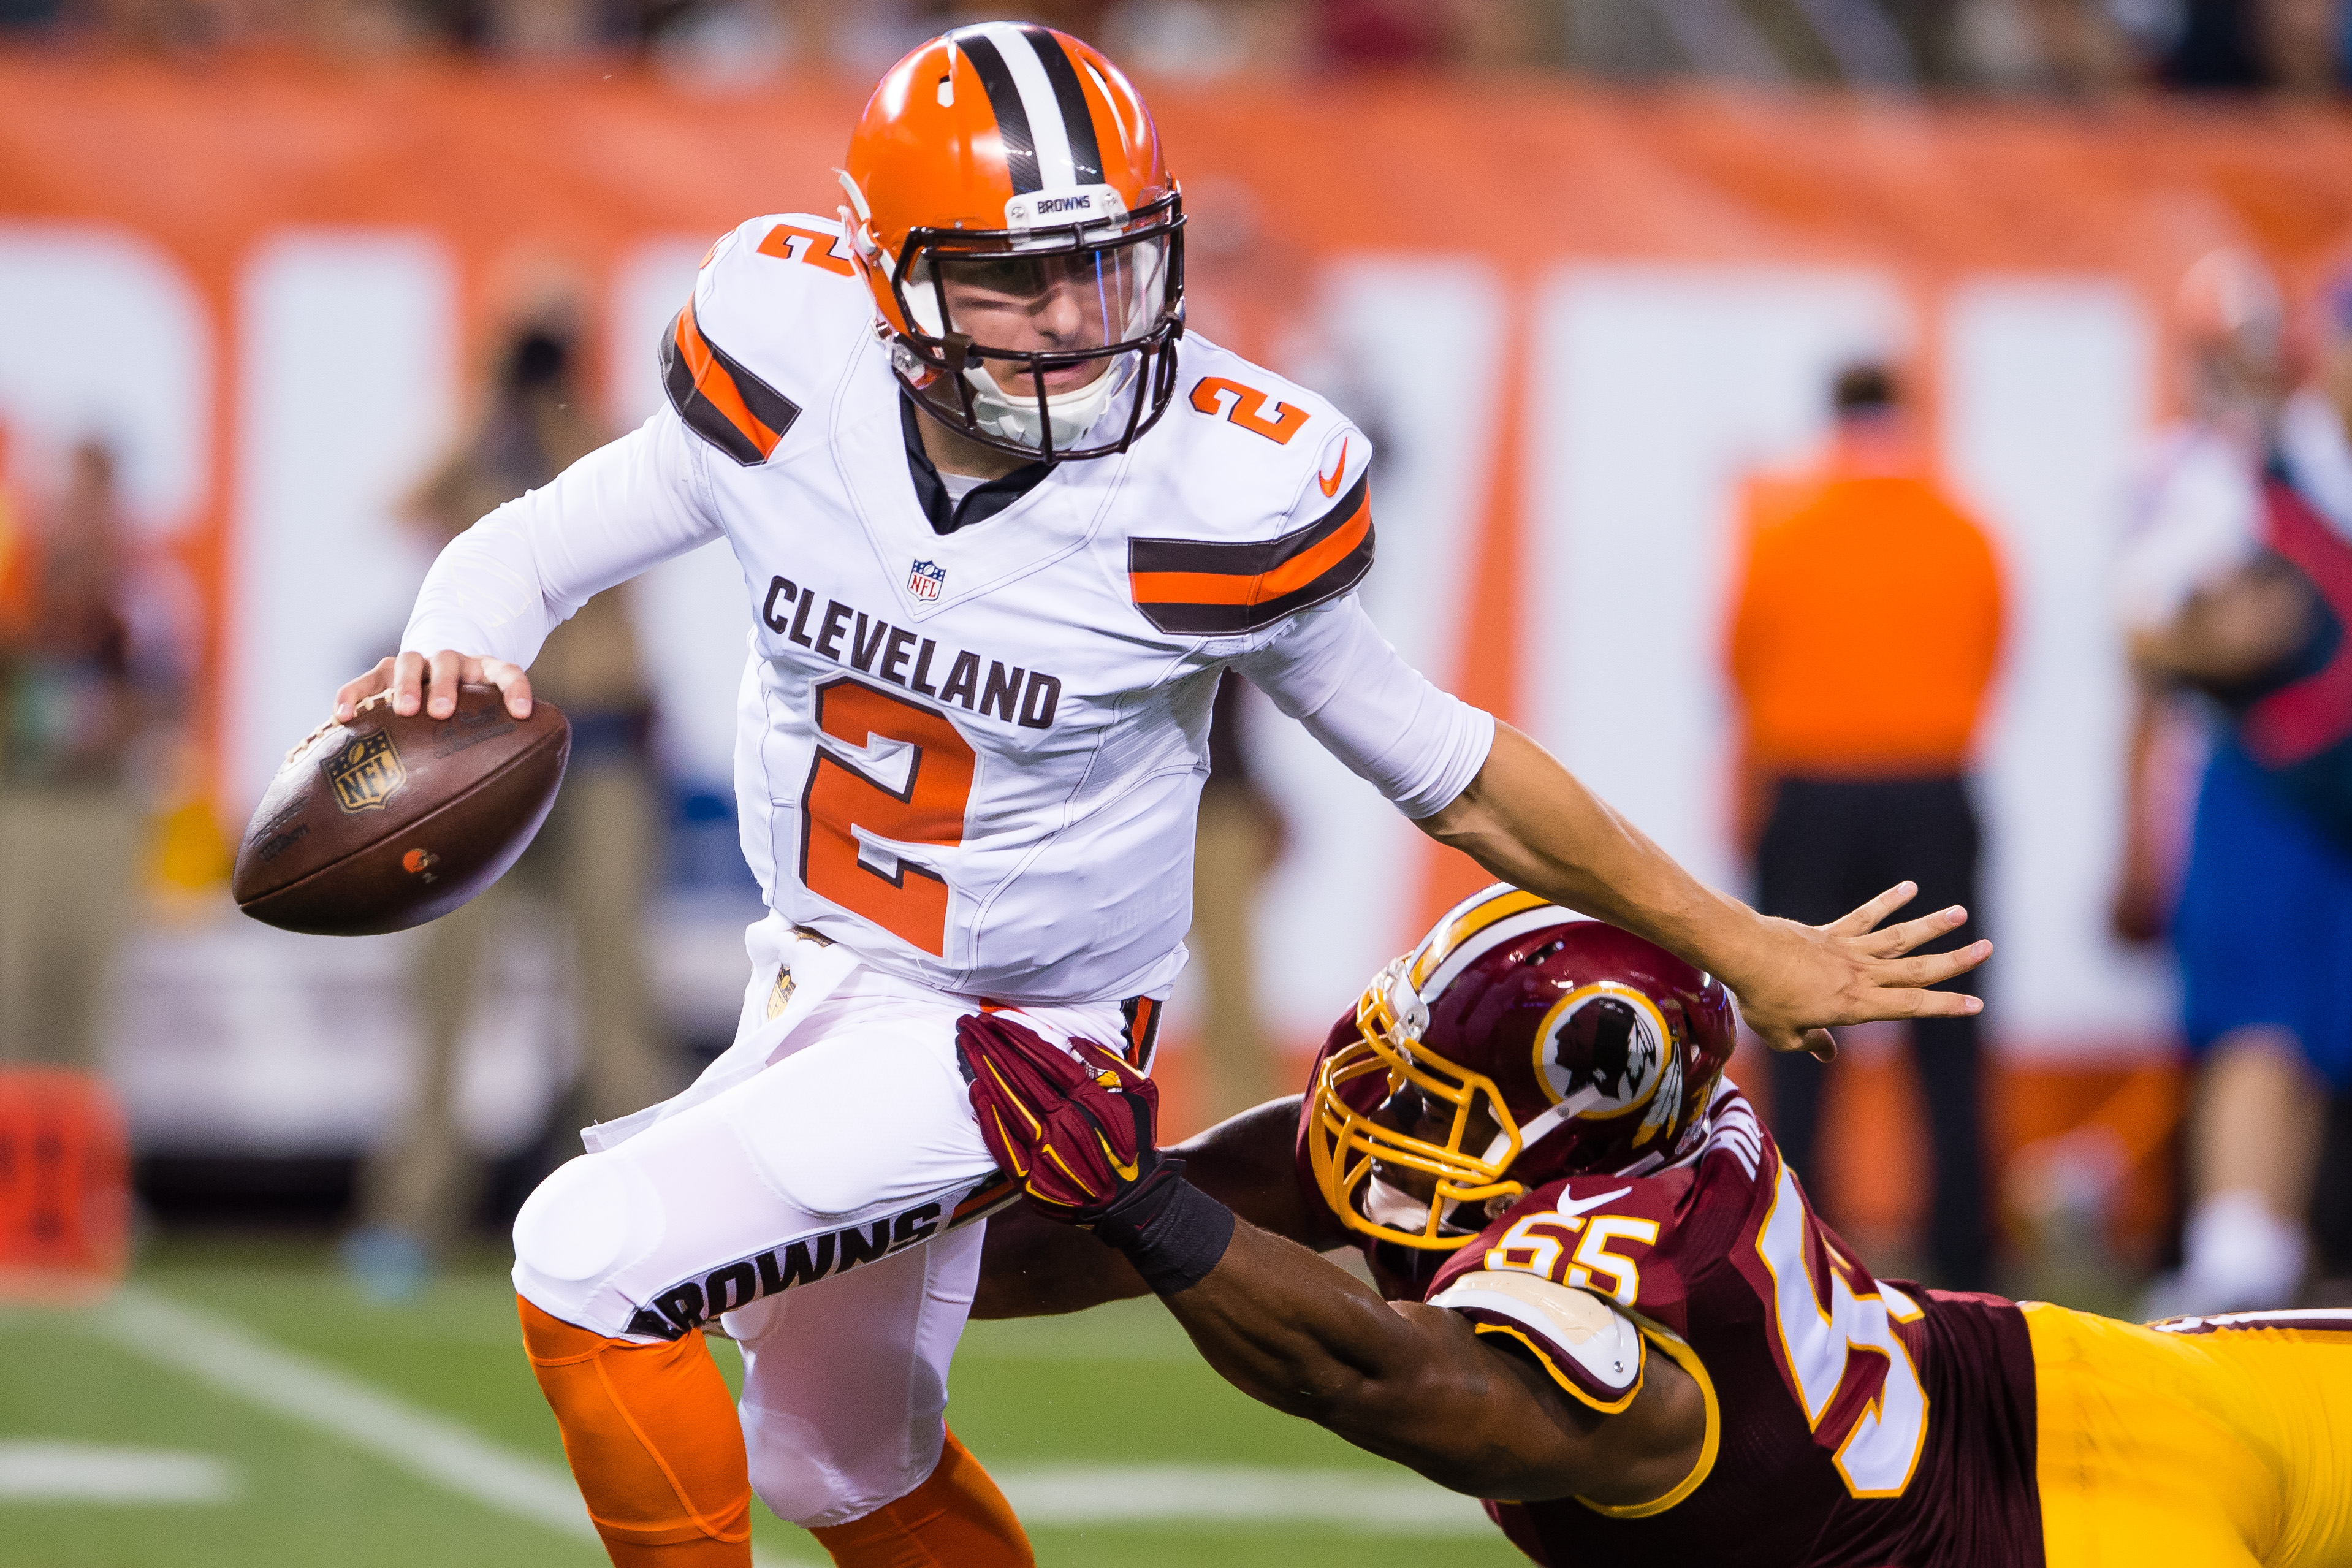 Is Johnny Manziel ready to be the Browns starter yet?